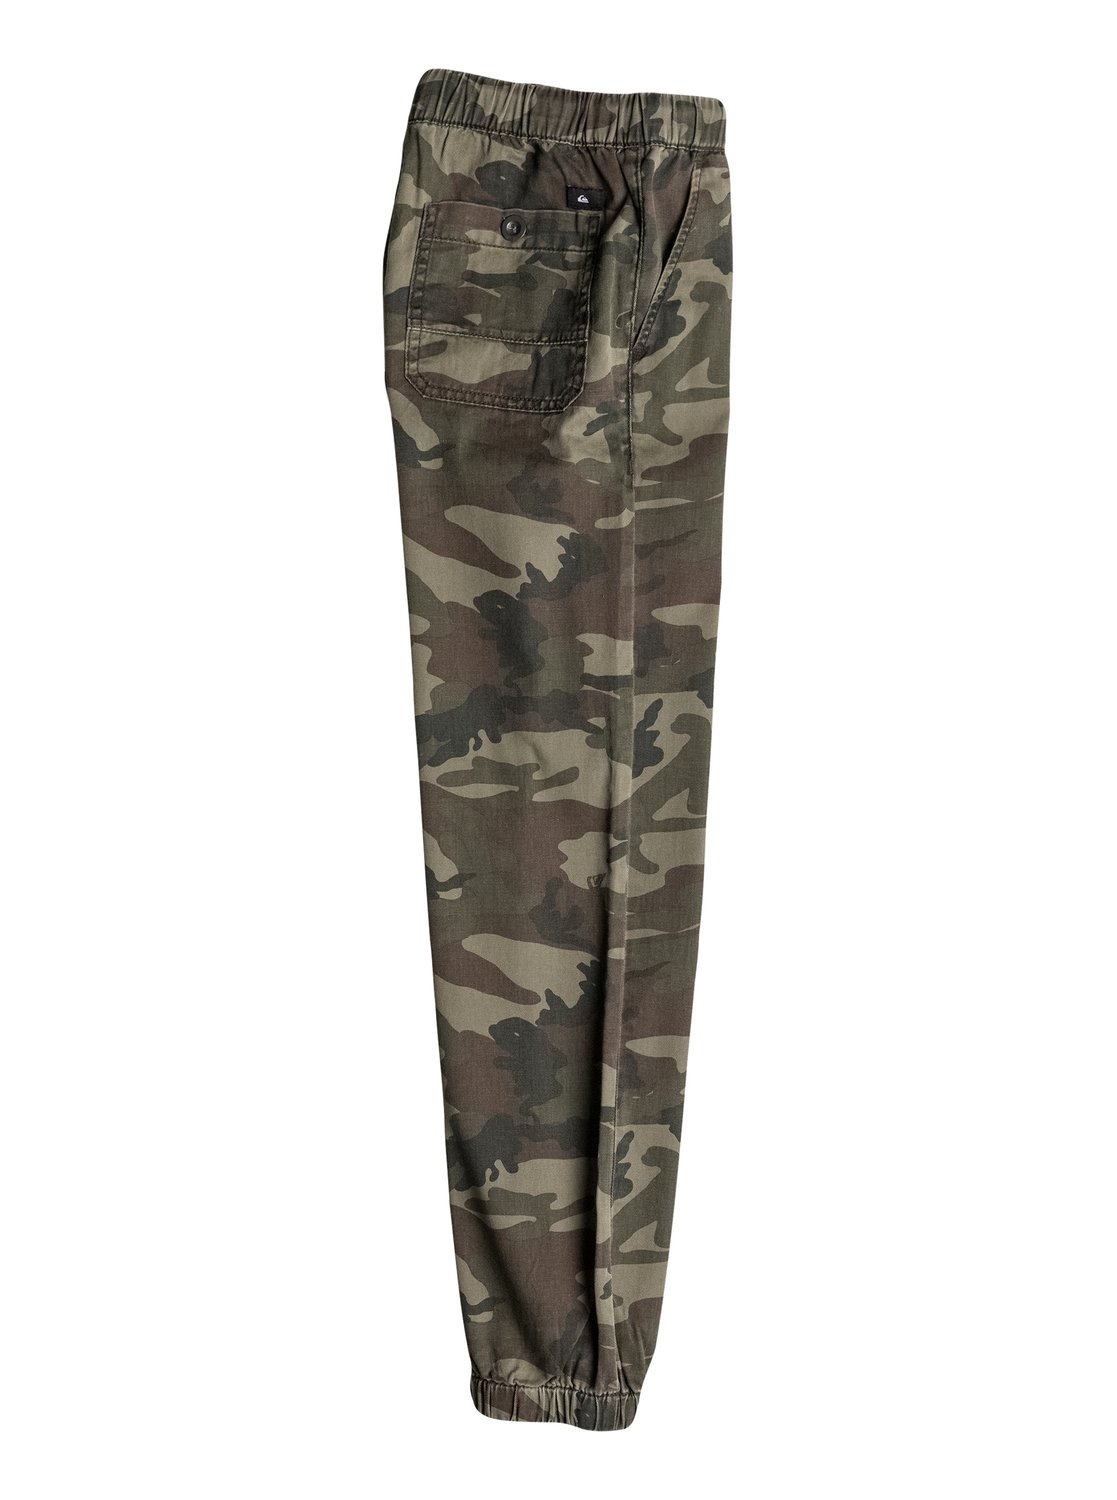 Garanimals Baby Boy Camo Pants 12m - 5t (m) Sold by MyLovebugRocky. $ Duck Dynasty Womens Hot Pink & Purple Duck Camo Sleep Pants Bird Camouflage Pajama Bottoms. Sold by The Primrose Lane. $ $ Wooden Trail Camo Rainsuit Pant Big Game Camo XXL CWS Sold by .